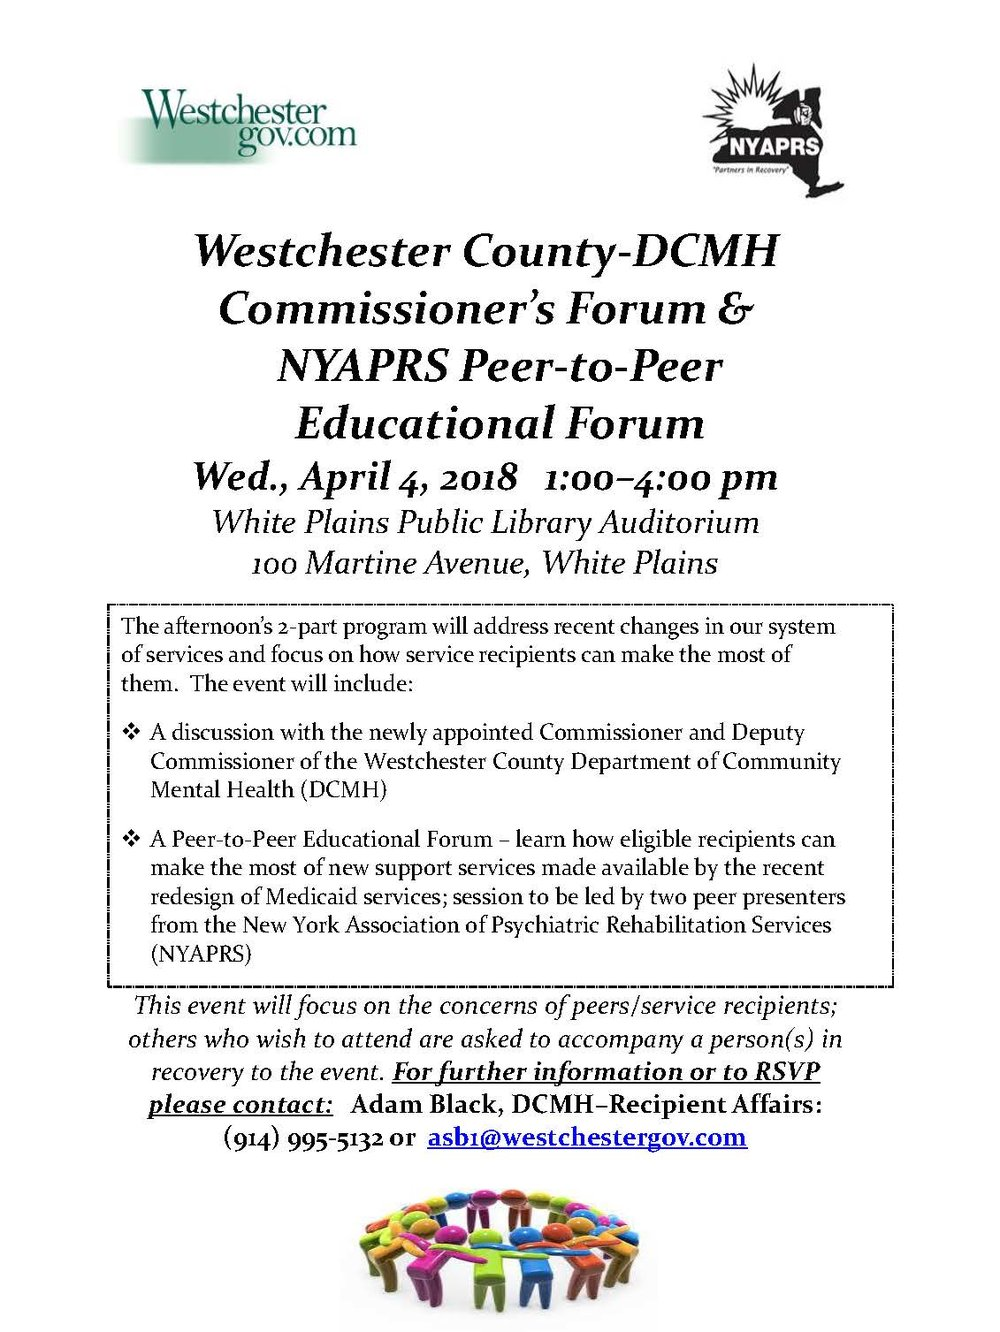 DCMH Commissioner's Forum  NYAPRS Peer-to-Peer Educational Forum - April 4 2018 in White Plains.jpg